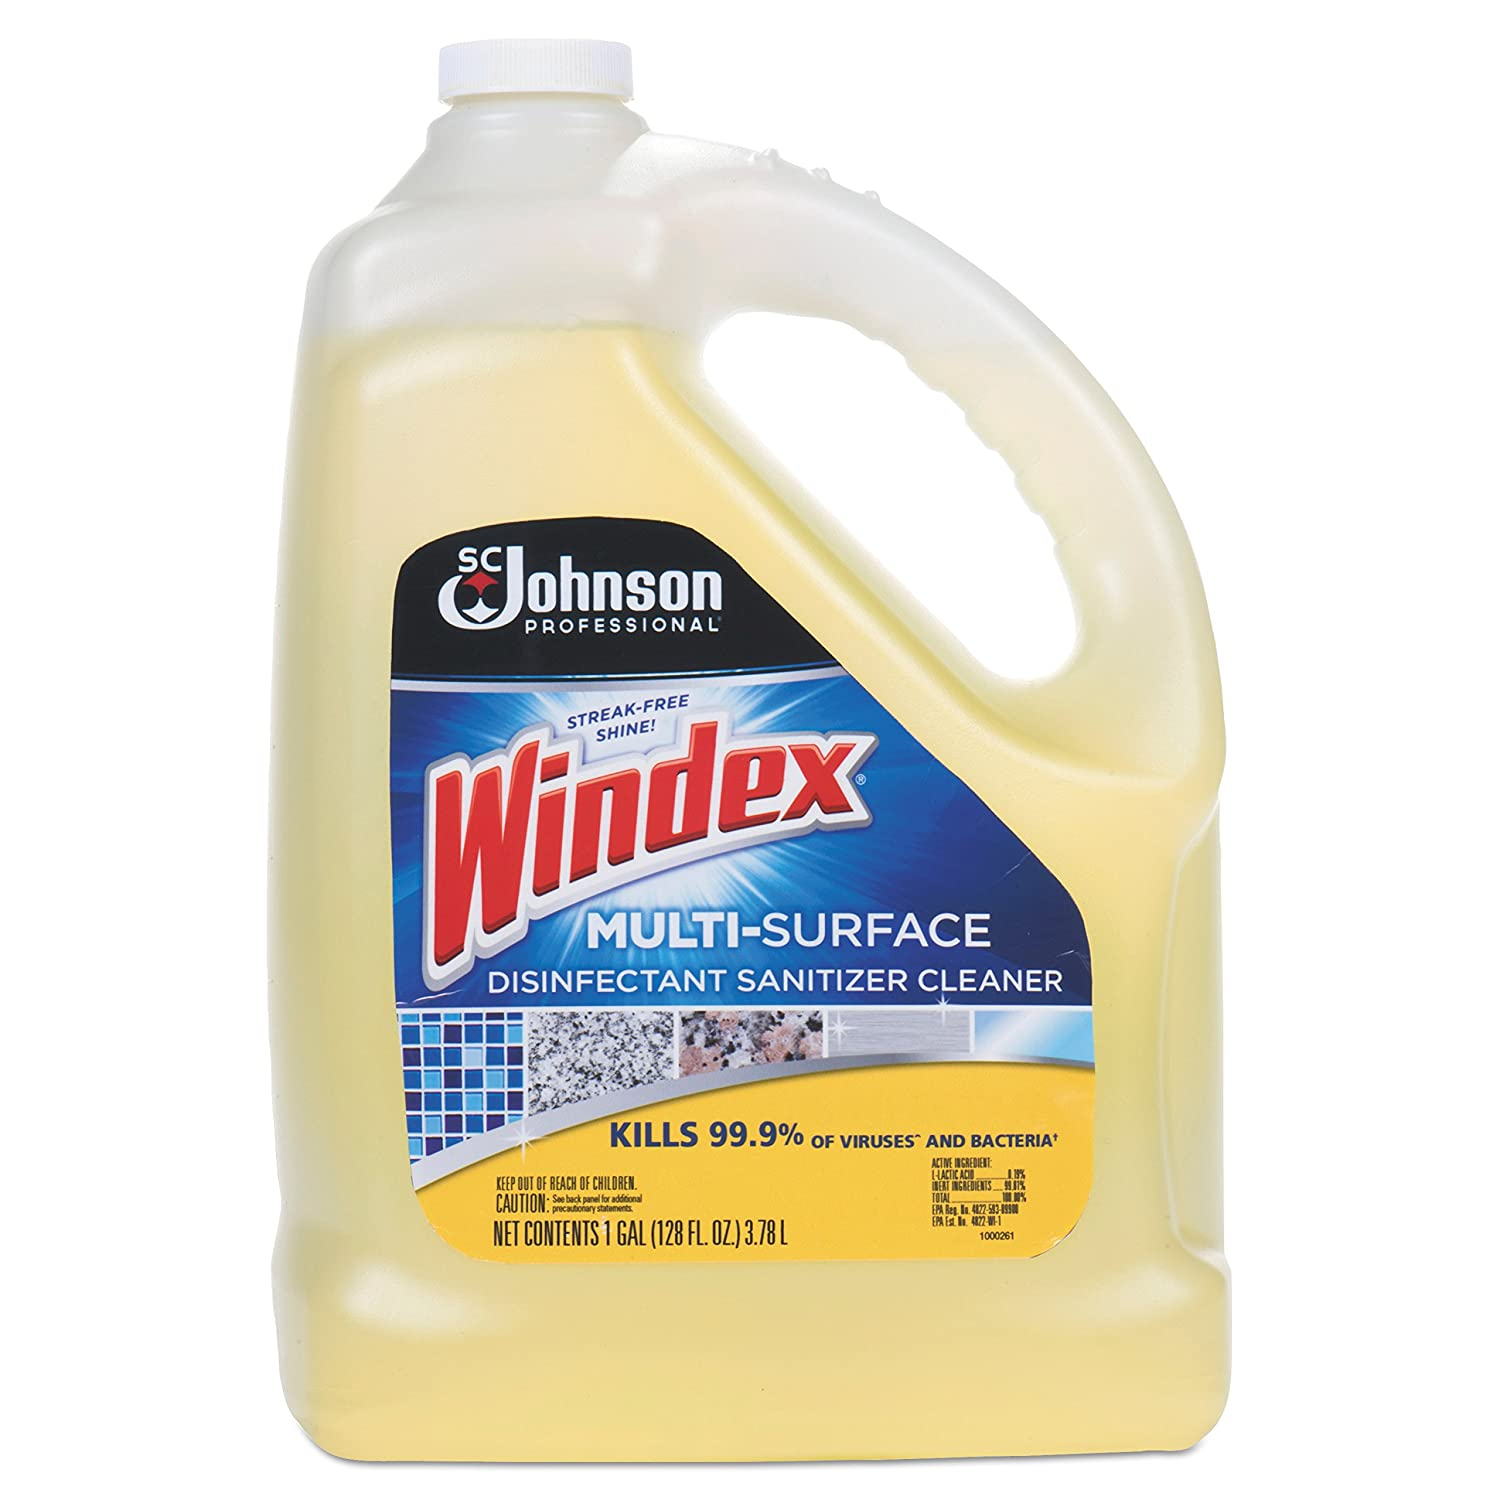 huge selection of e2754 8a39f Amazon.com: Windex 657067 T Multi-Surface Disinfectant Cleaner ...